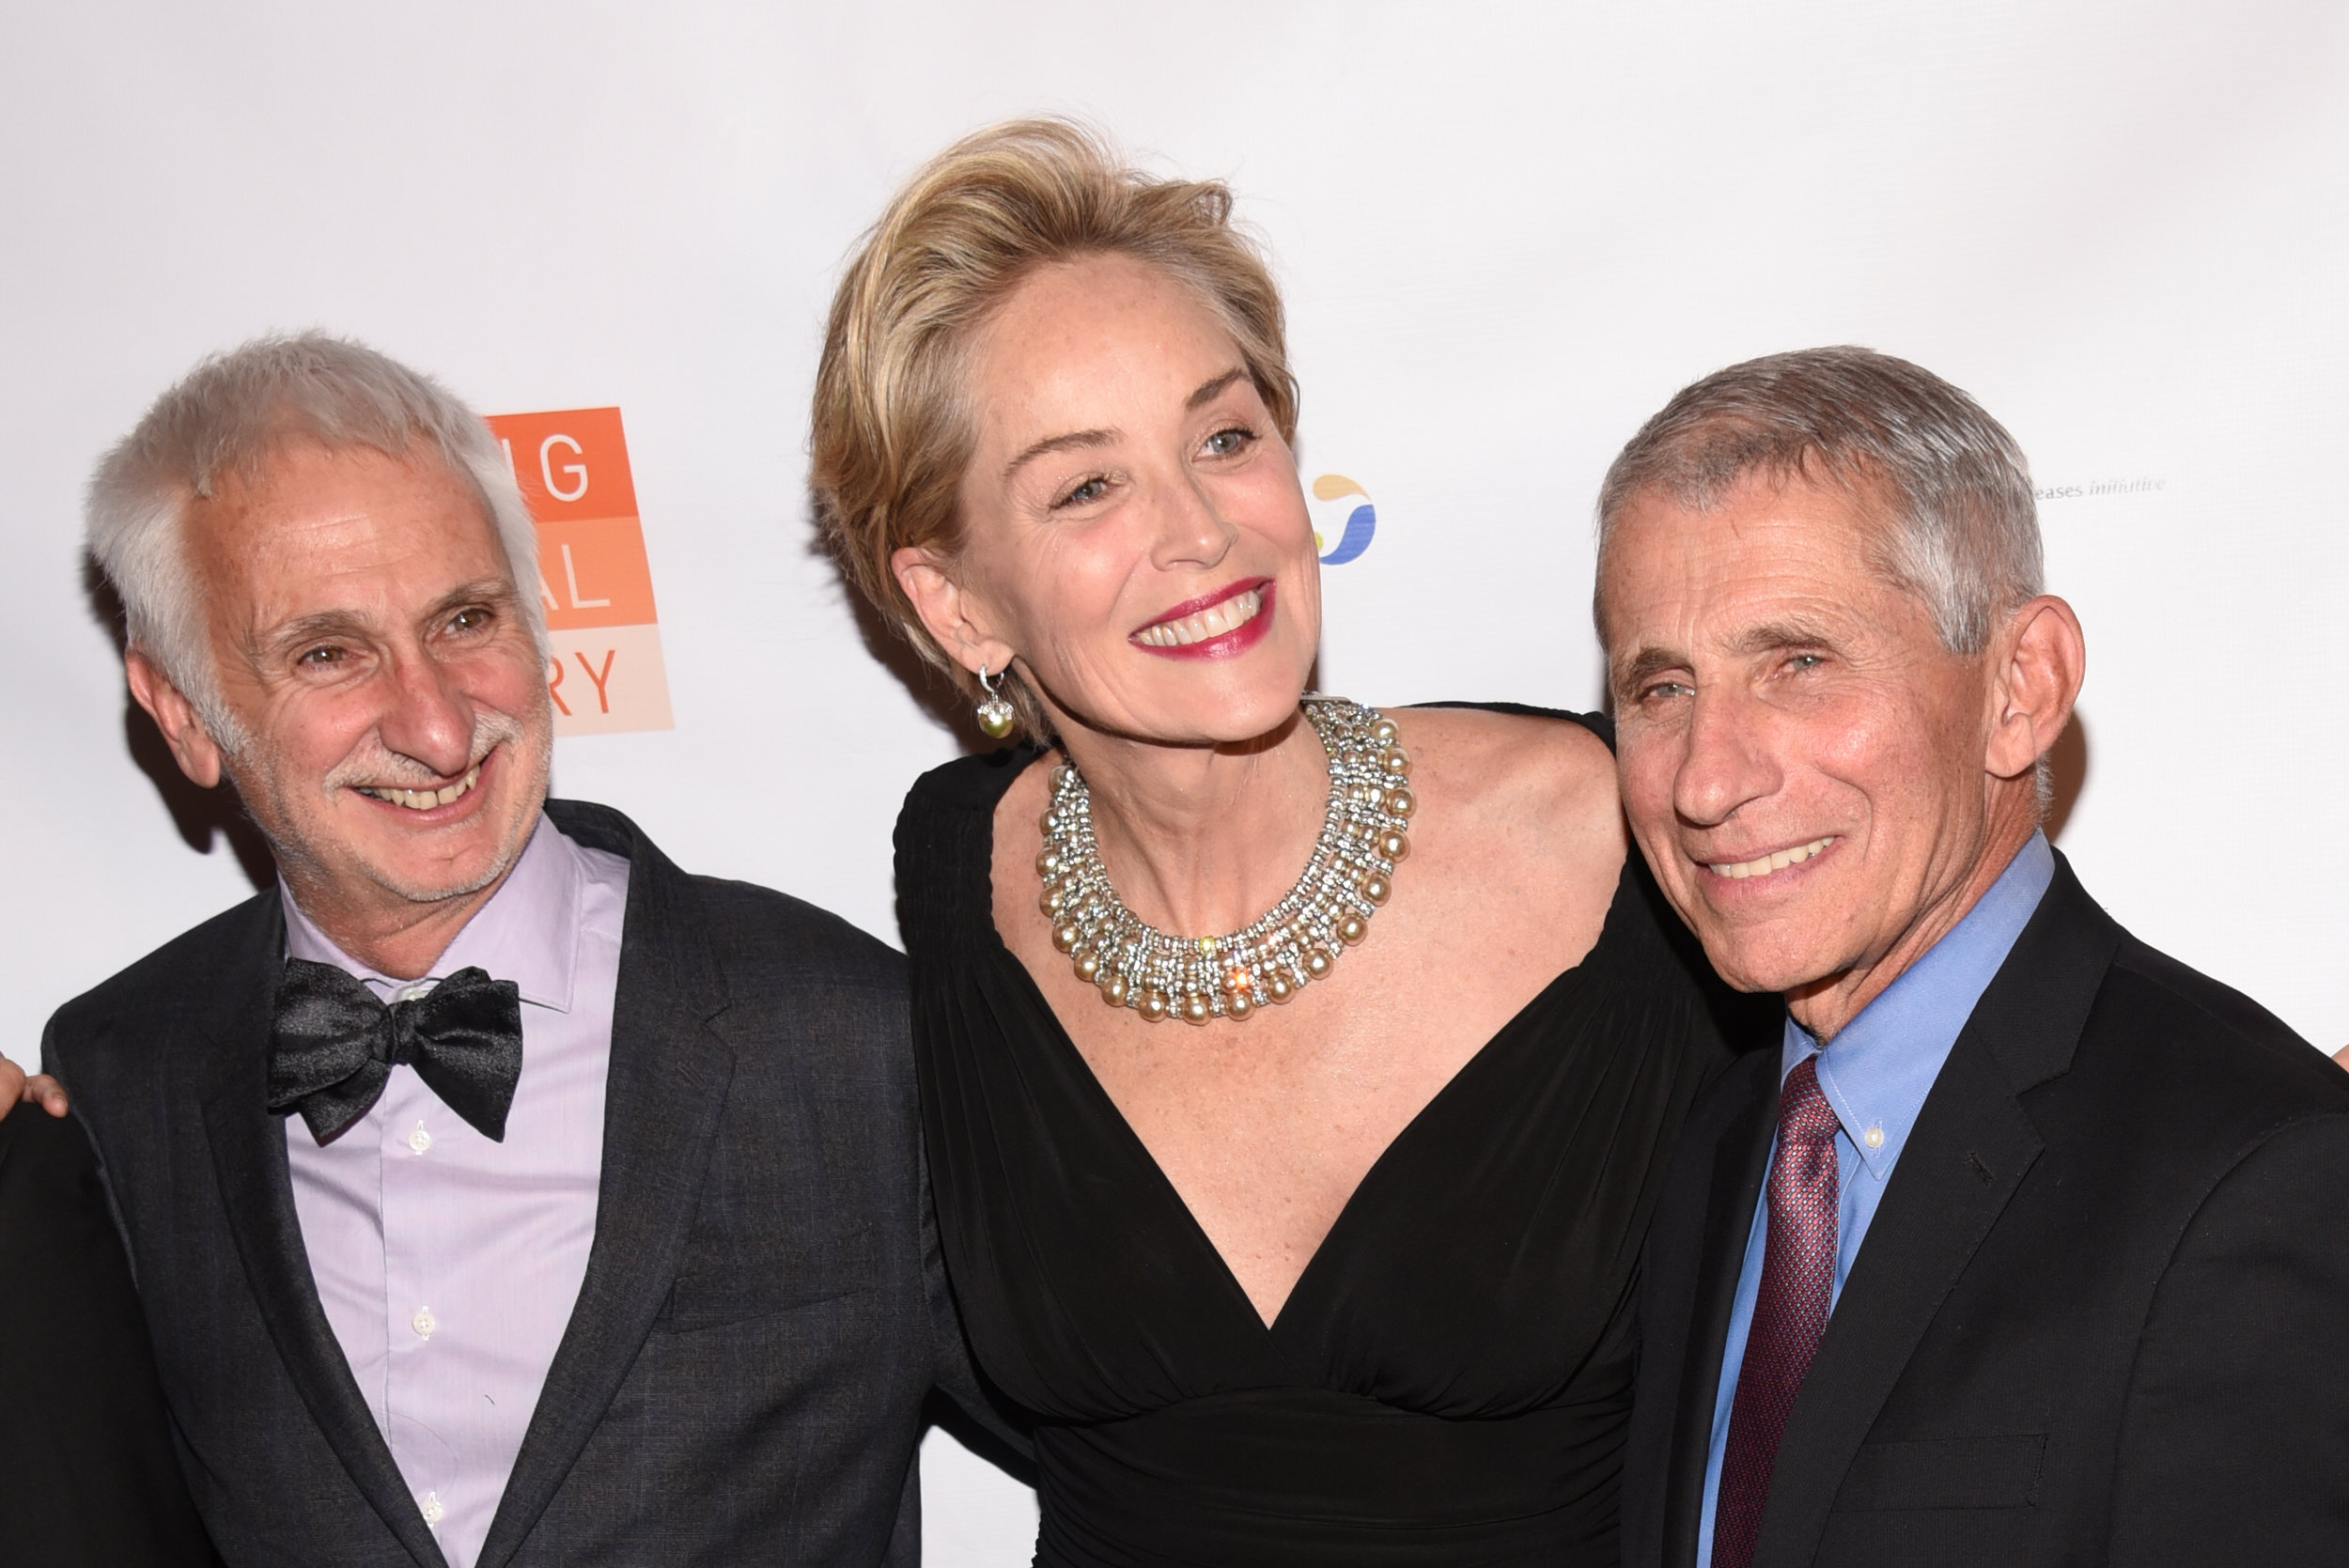 Dr. Bernard Pécoul, Sharon Stone and Dr. Anthony S. Fauci